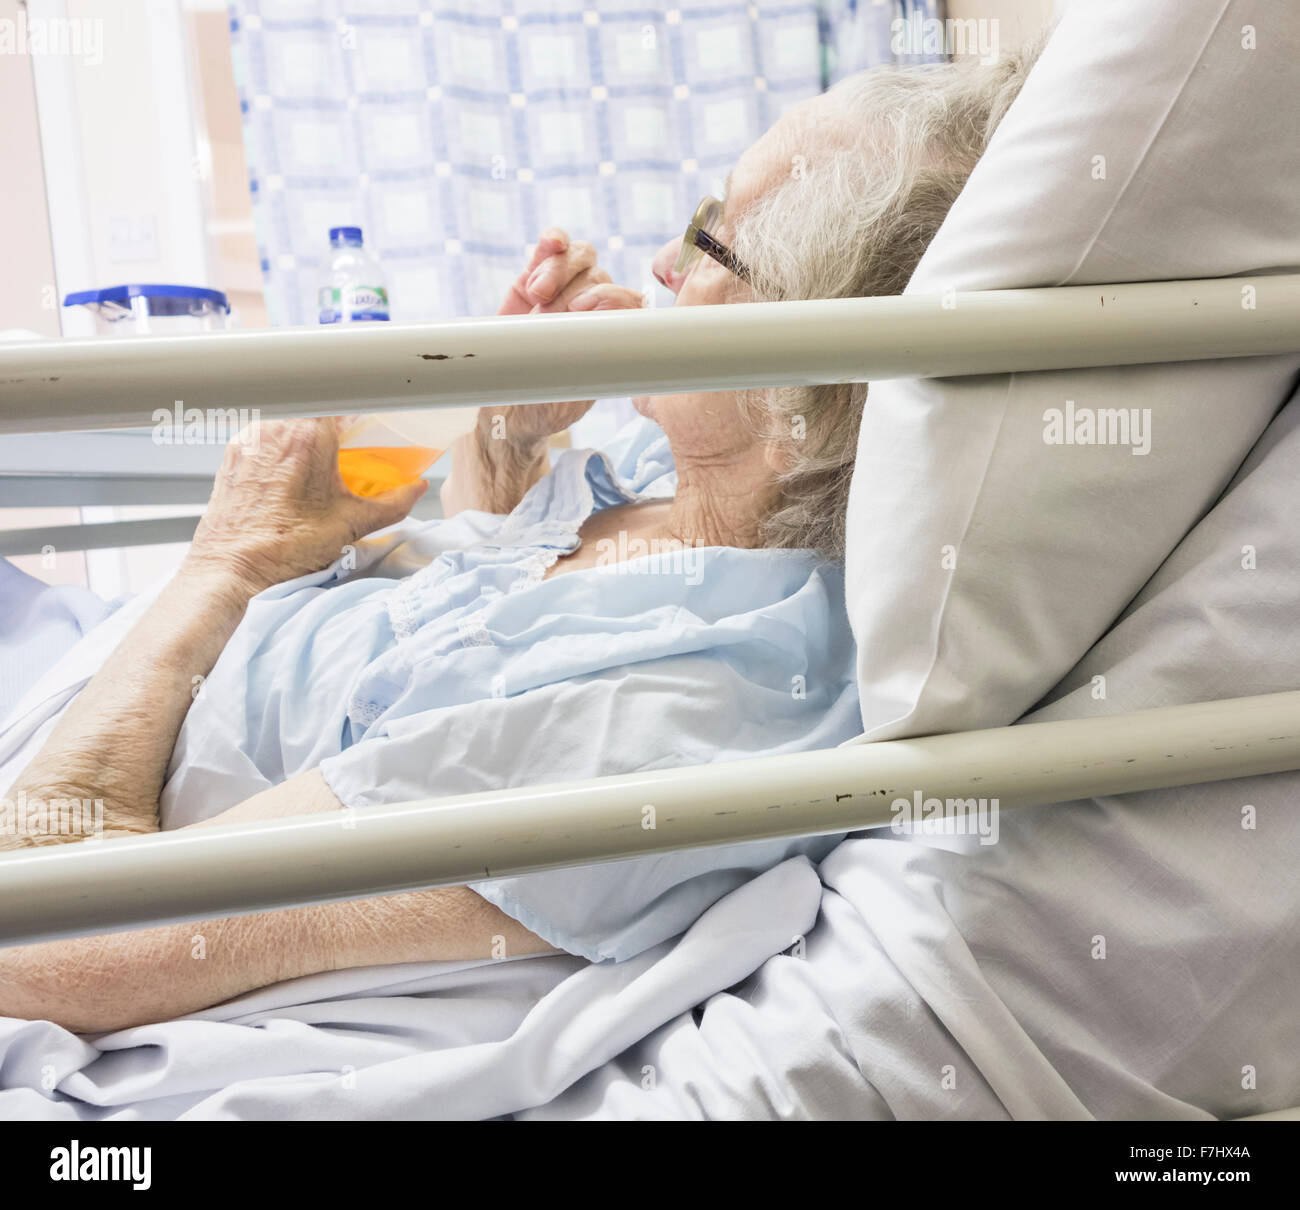 Ninety year old female patient drinking in bed in National Health Service Hospital in England, UK. - Stock Image